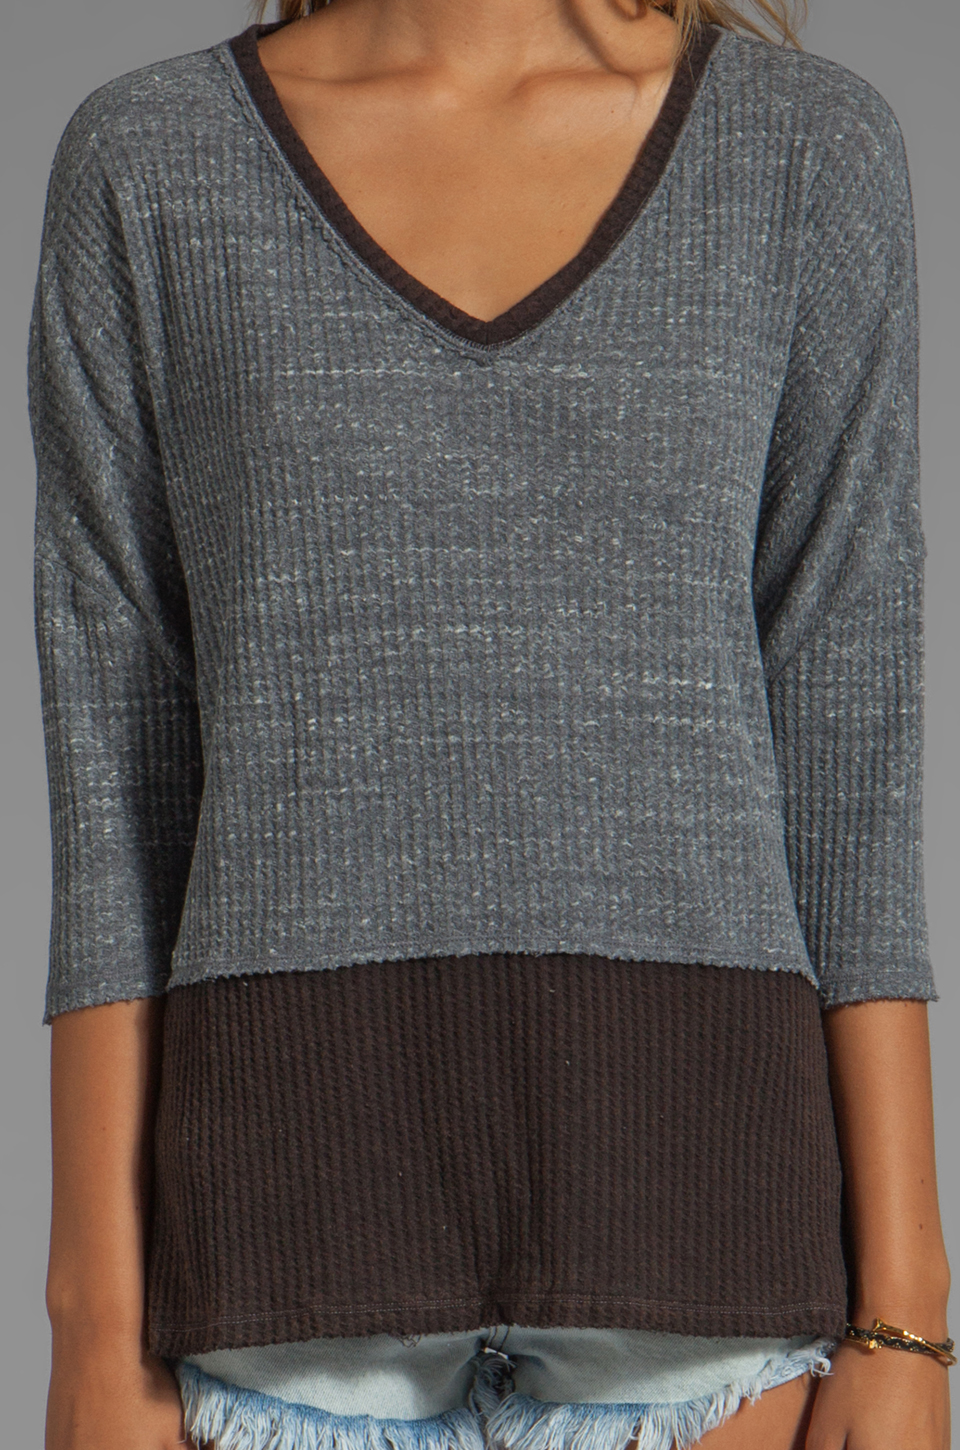 Free People Greatest Hit Sweater in Heather Grey Combo